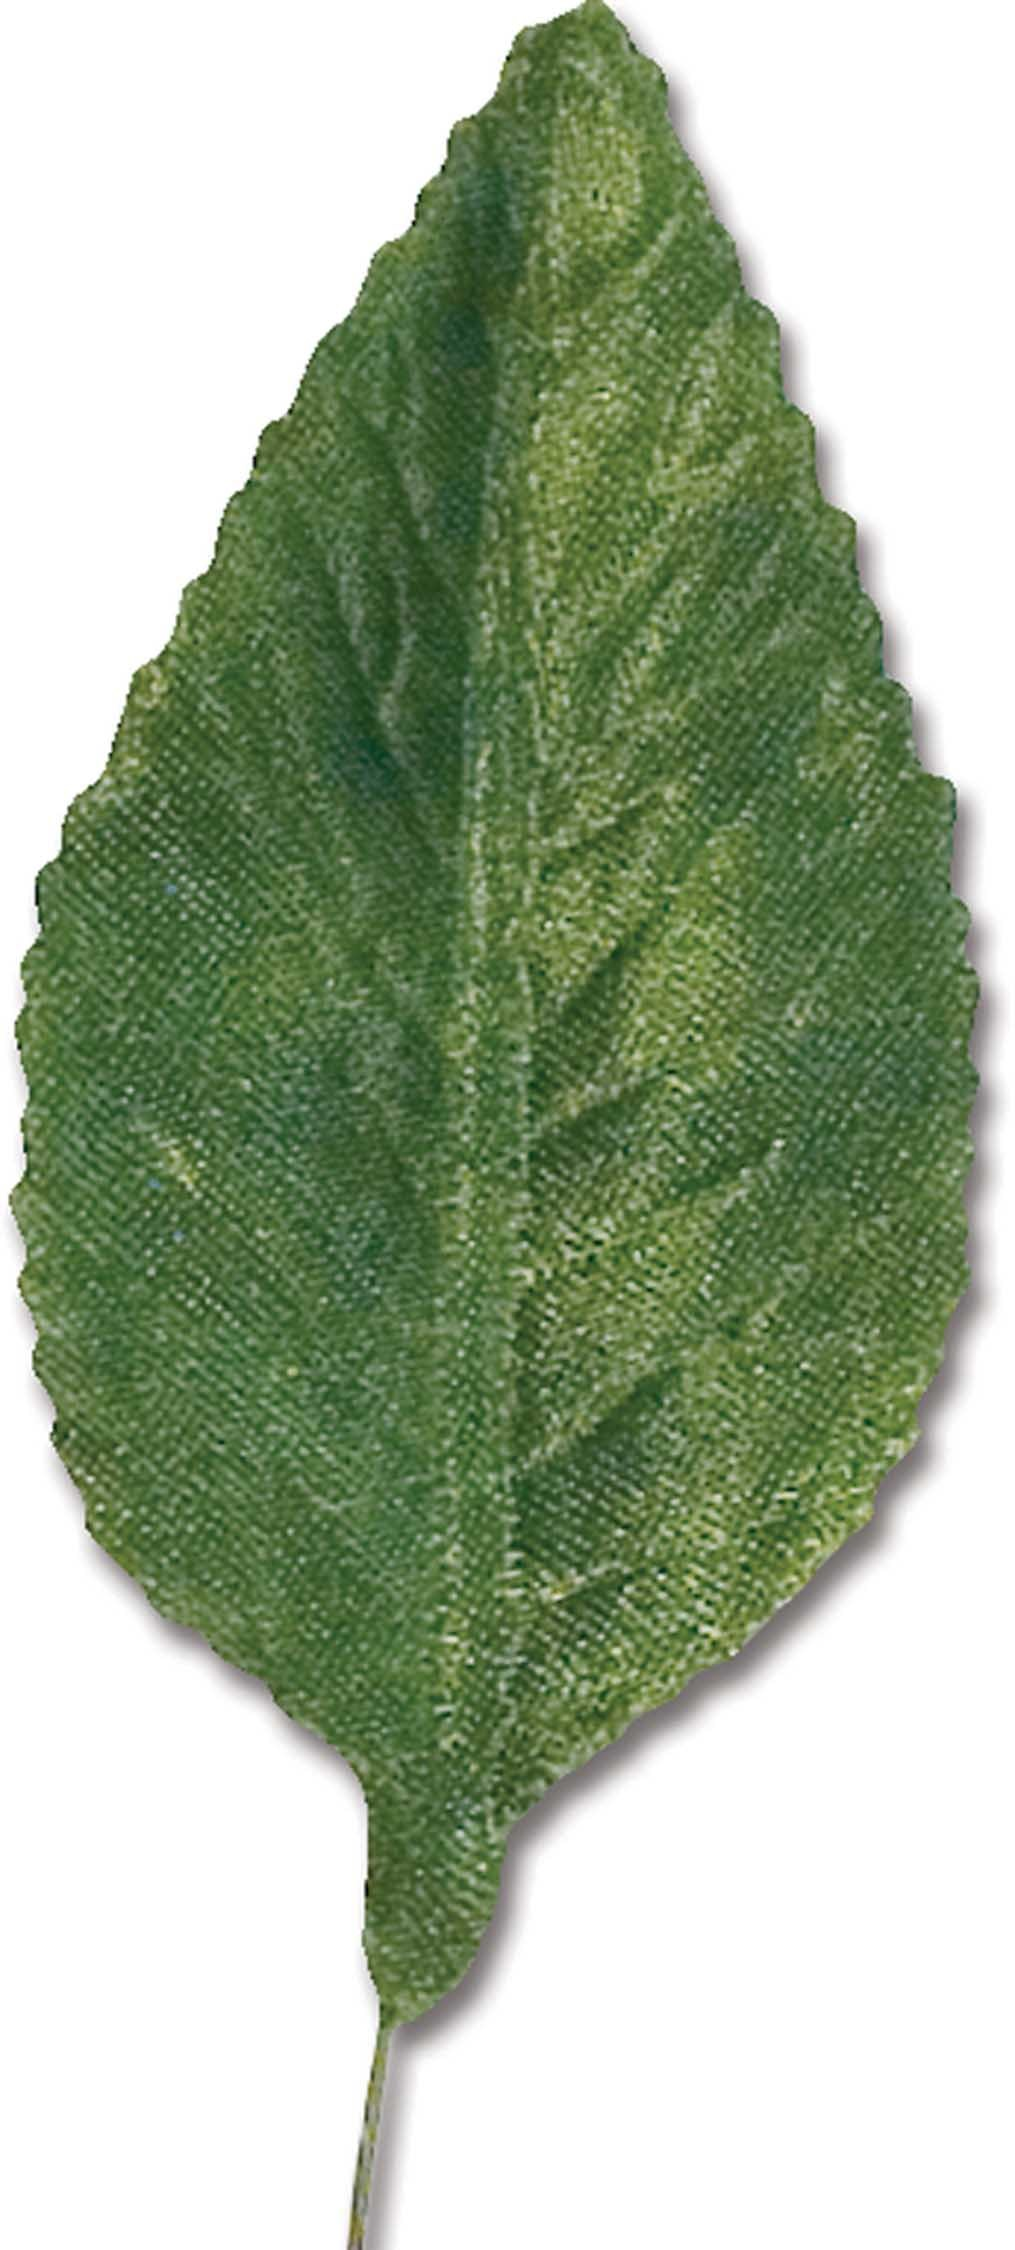 """1000GRN - 2"""" Green Wired Corsage leaves 1000GRN"""